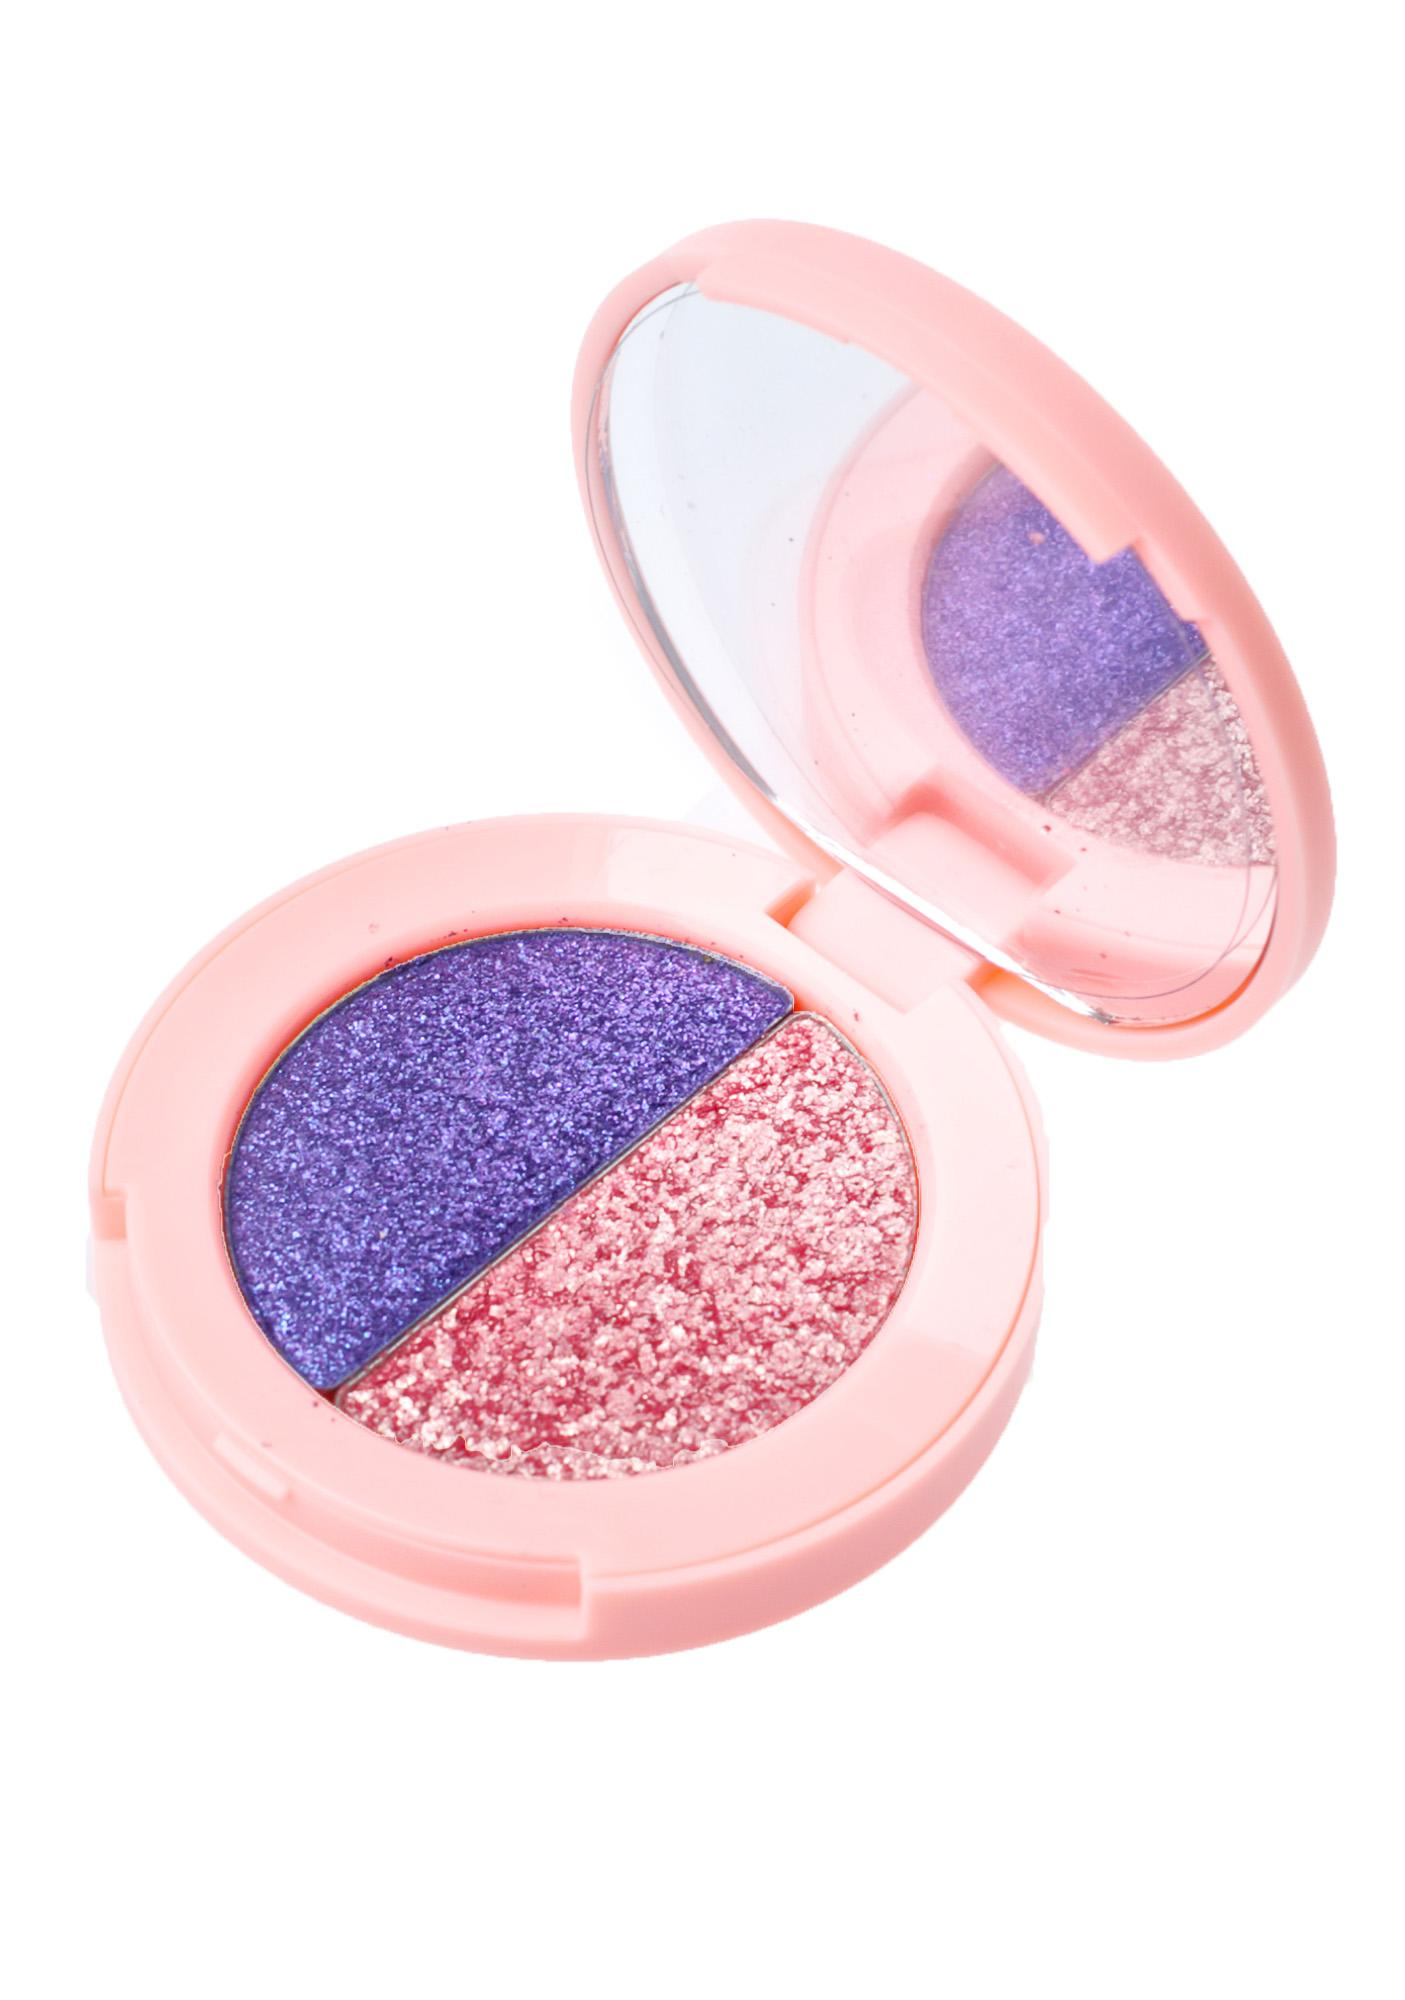 Lime Crime Tutu/En Pointe Superfoil Eyeshadow Duo